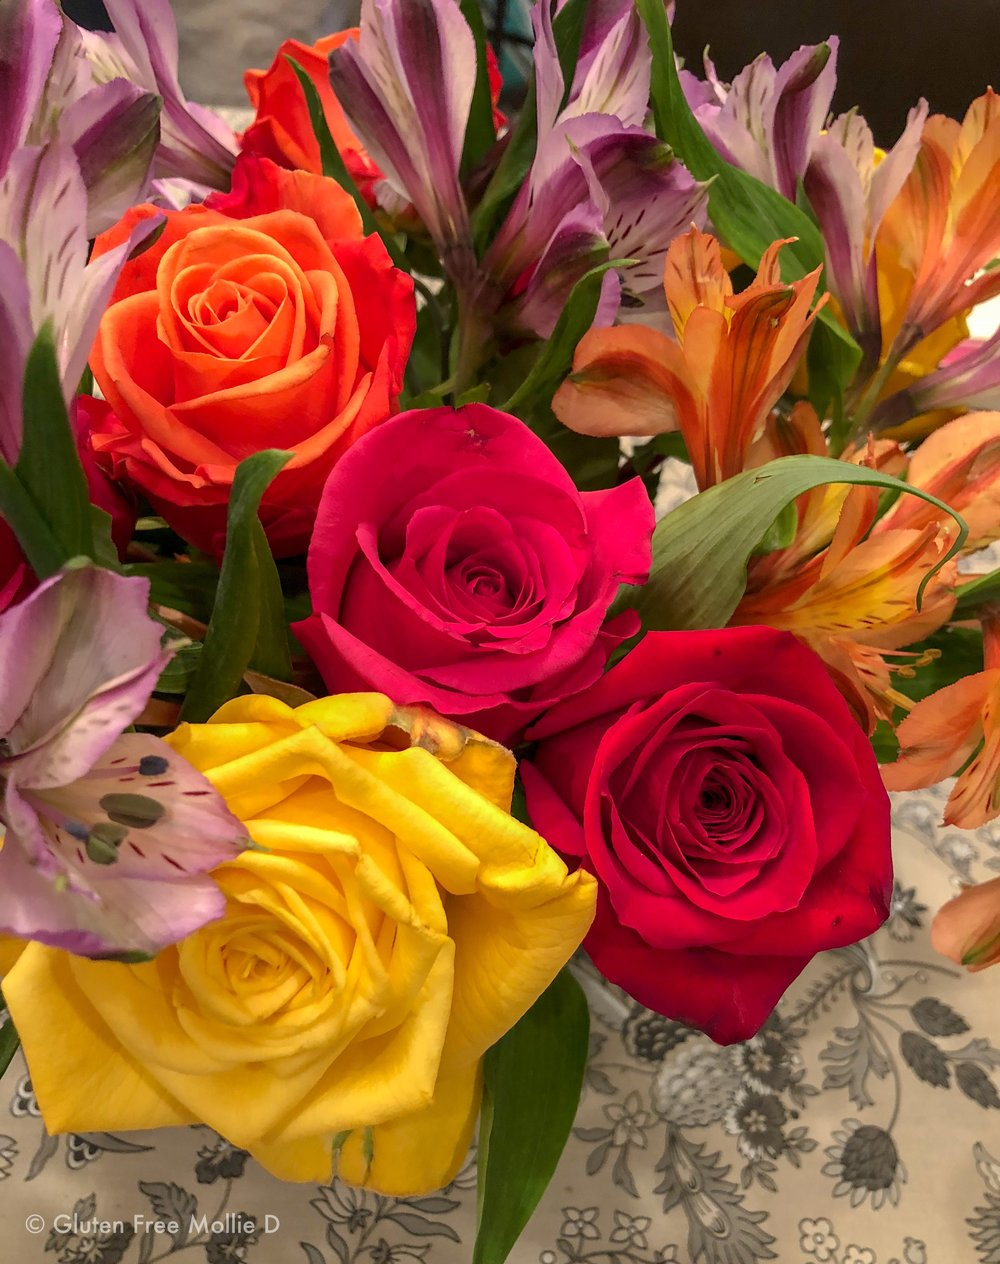 The brightest birthday roses. :)